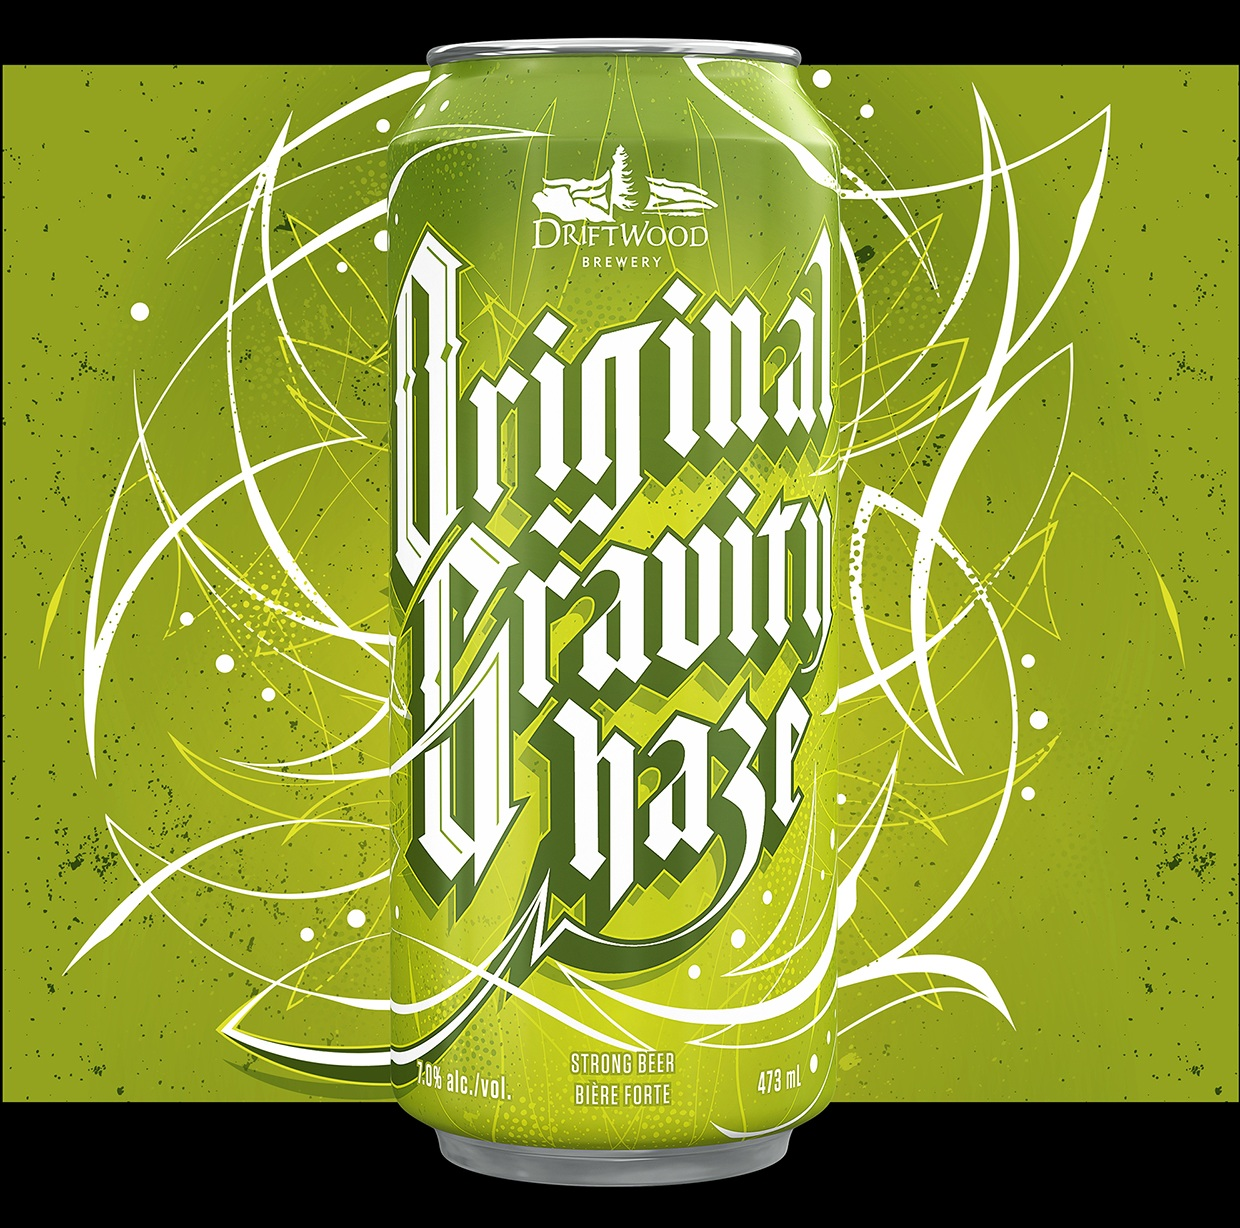 Original+Gravity+Haze+packaging+design%2C+for+Driftwood+Brewery